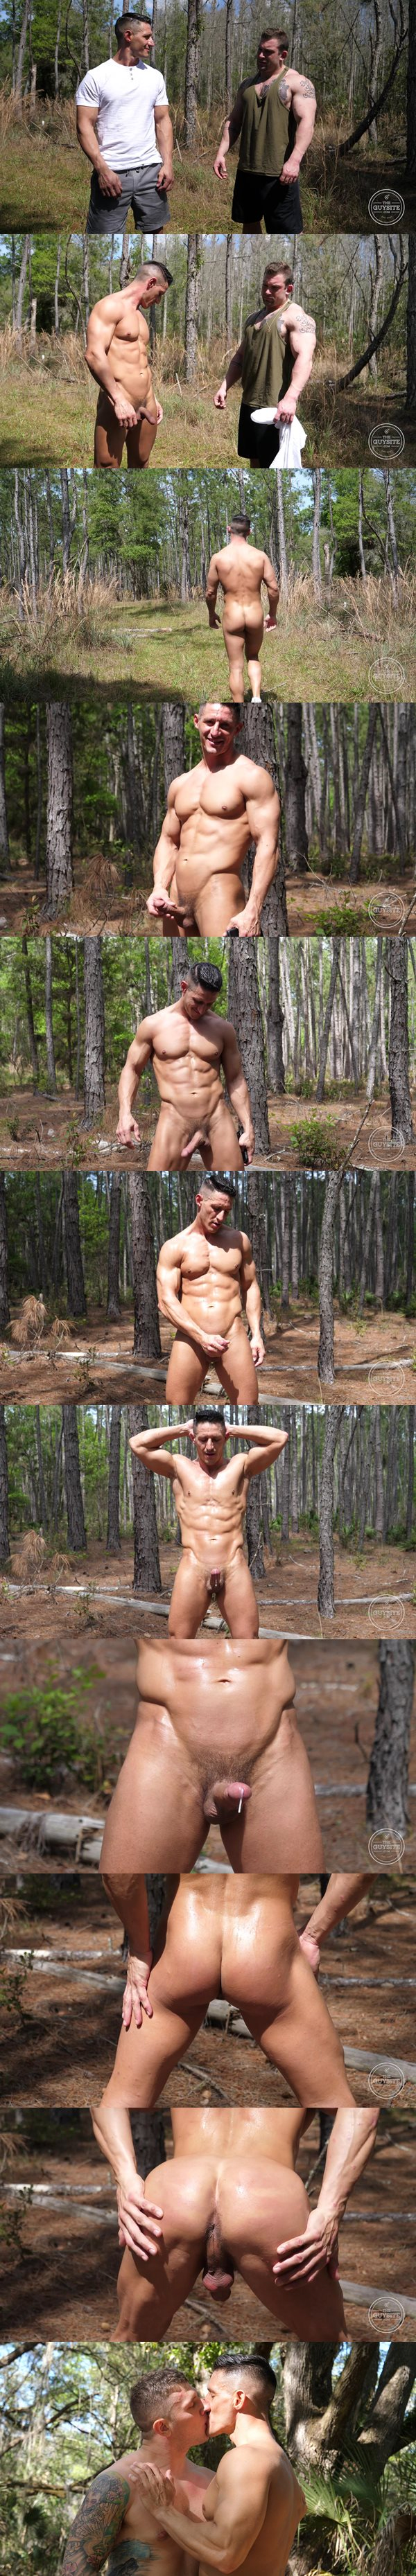 Masculine military stud Jax has a hands free orgasm in Brawn in the Woods at Theguysite